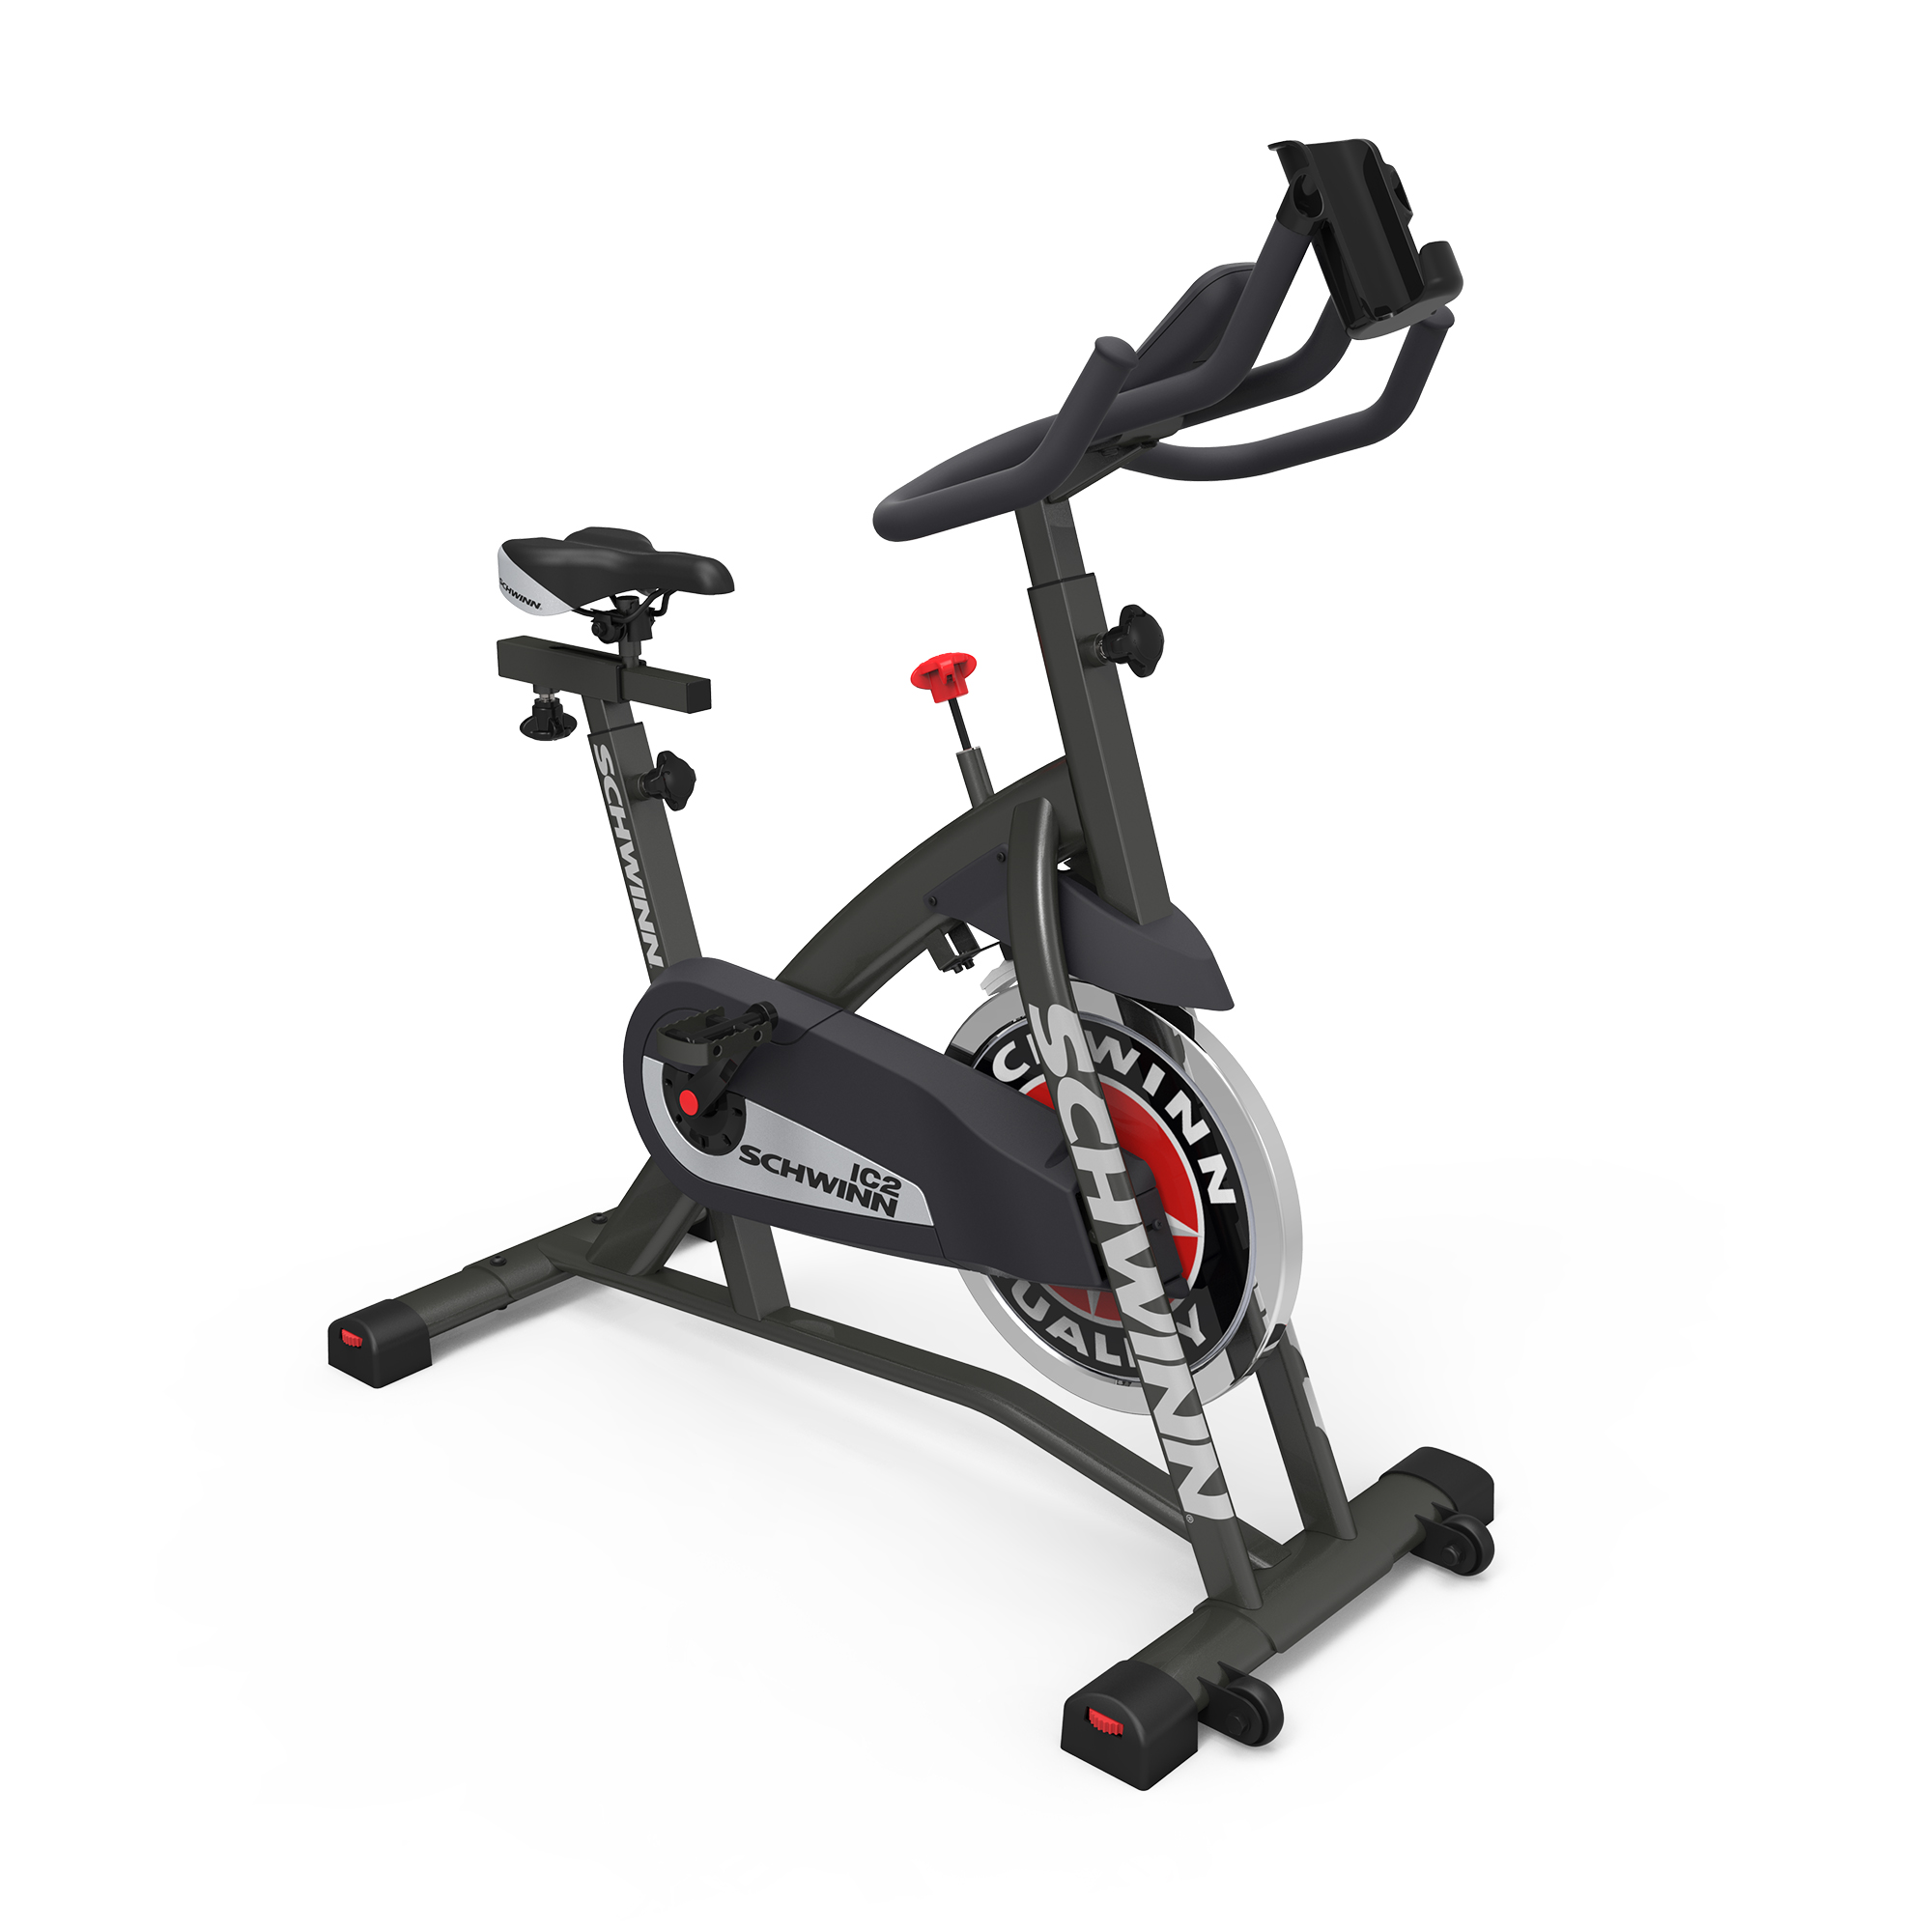 schwinn ic2 indoor cycling bike schwinn. Black Bedroom Furniture Sets. Home Design Ideas